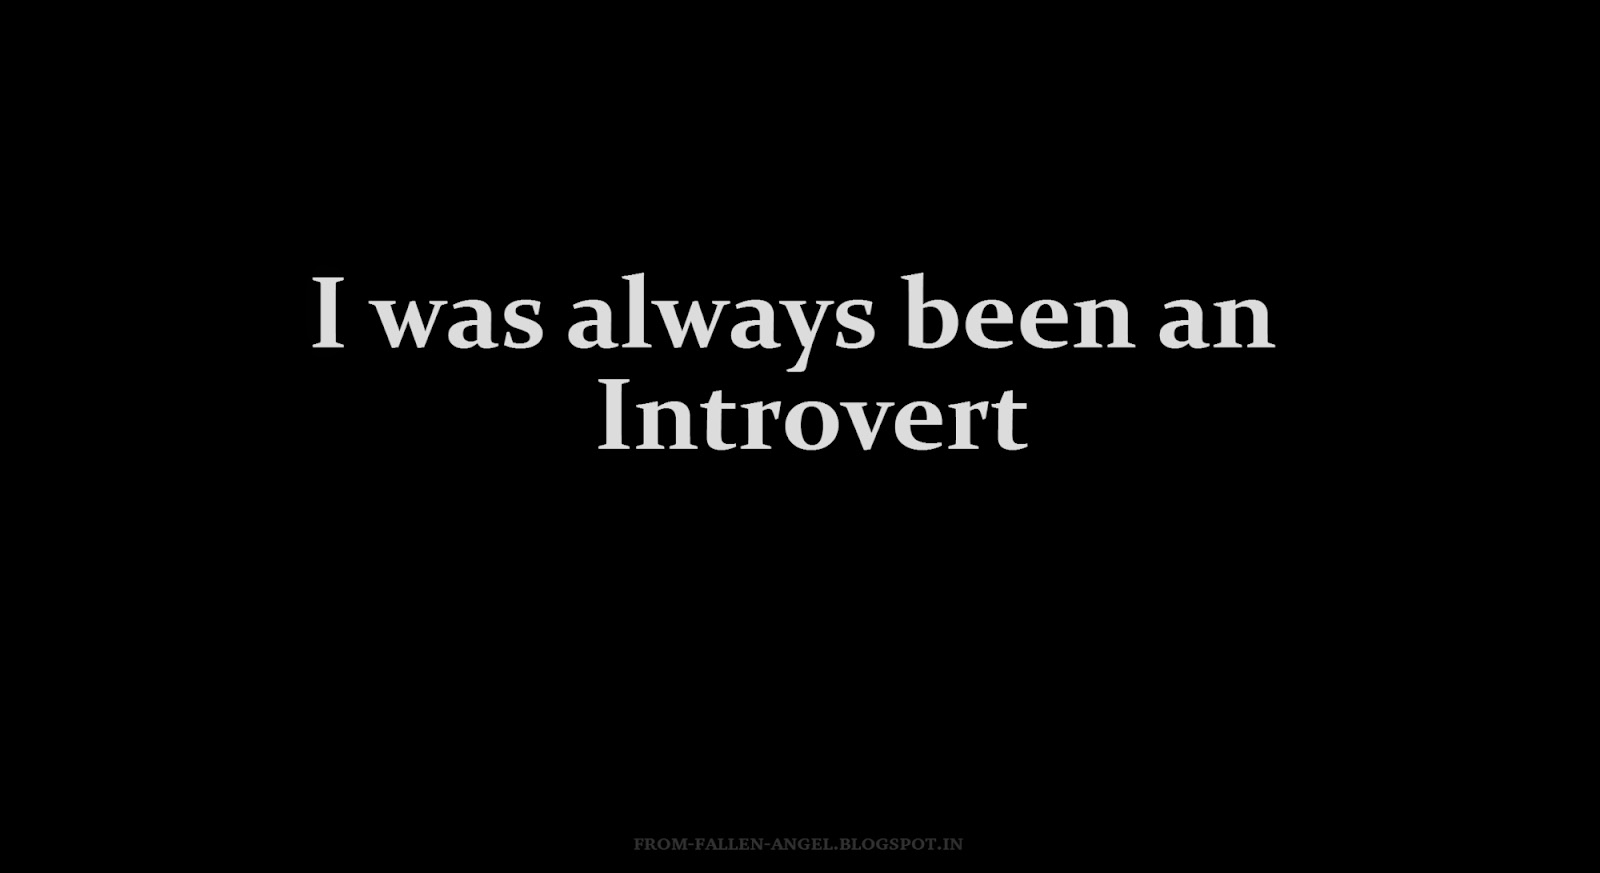 I was always been an introvert